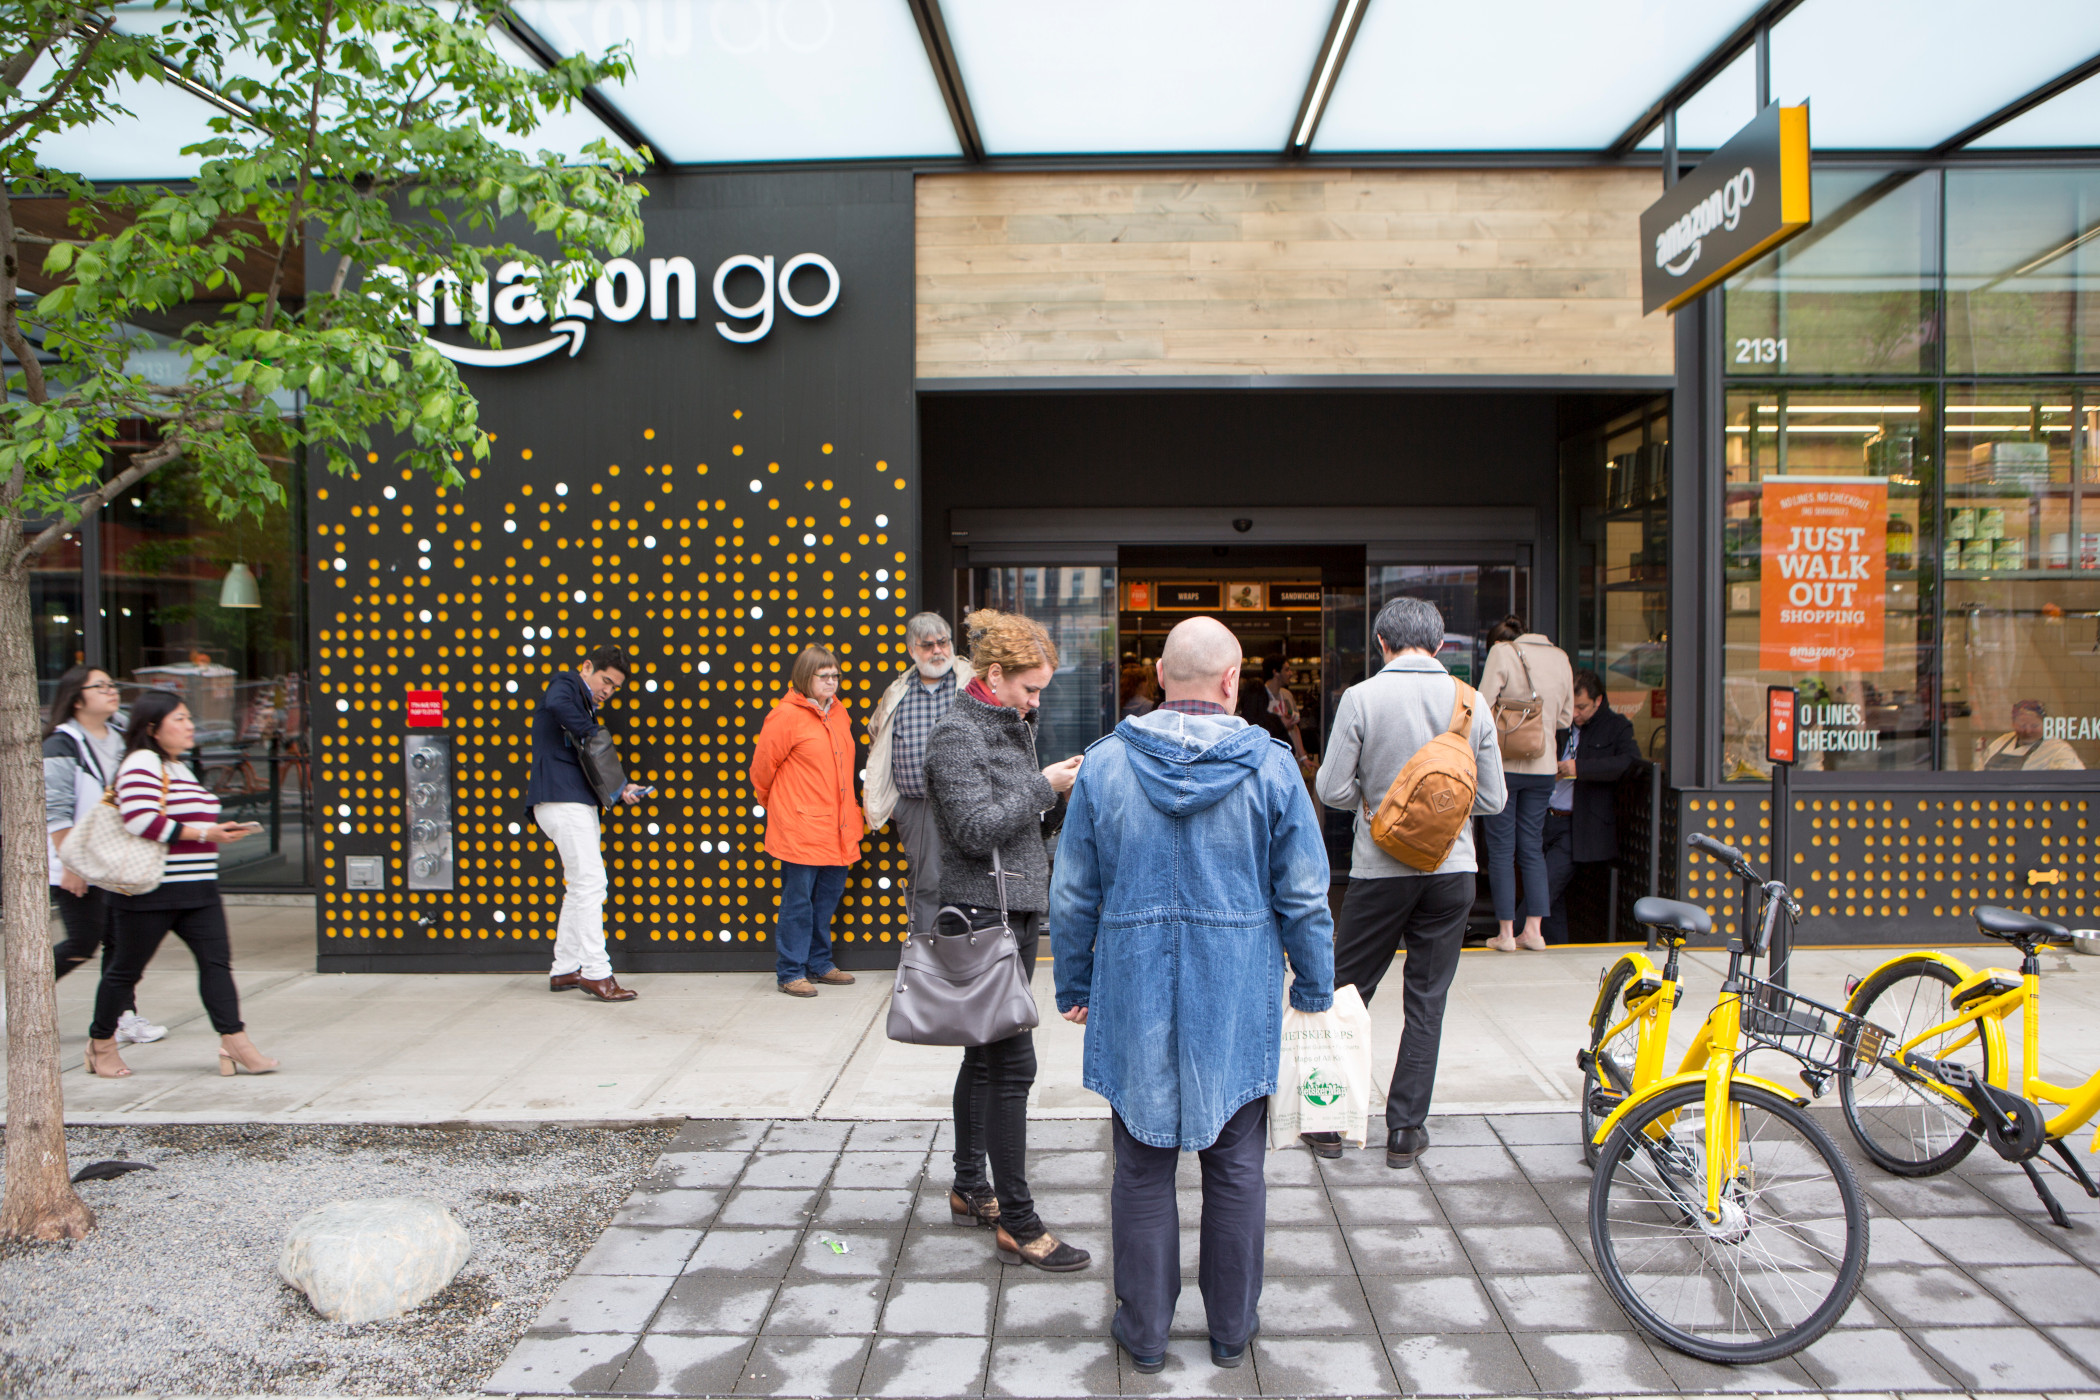 Online retailer Amazon is expanding its cashierless Go stores. (iStock)